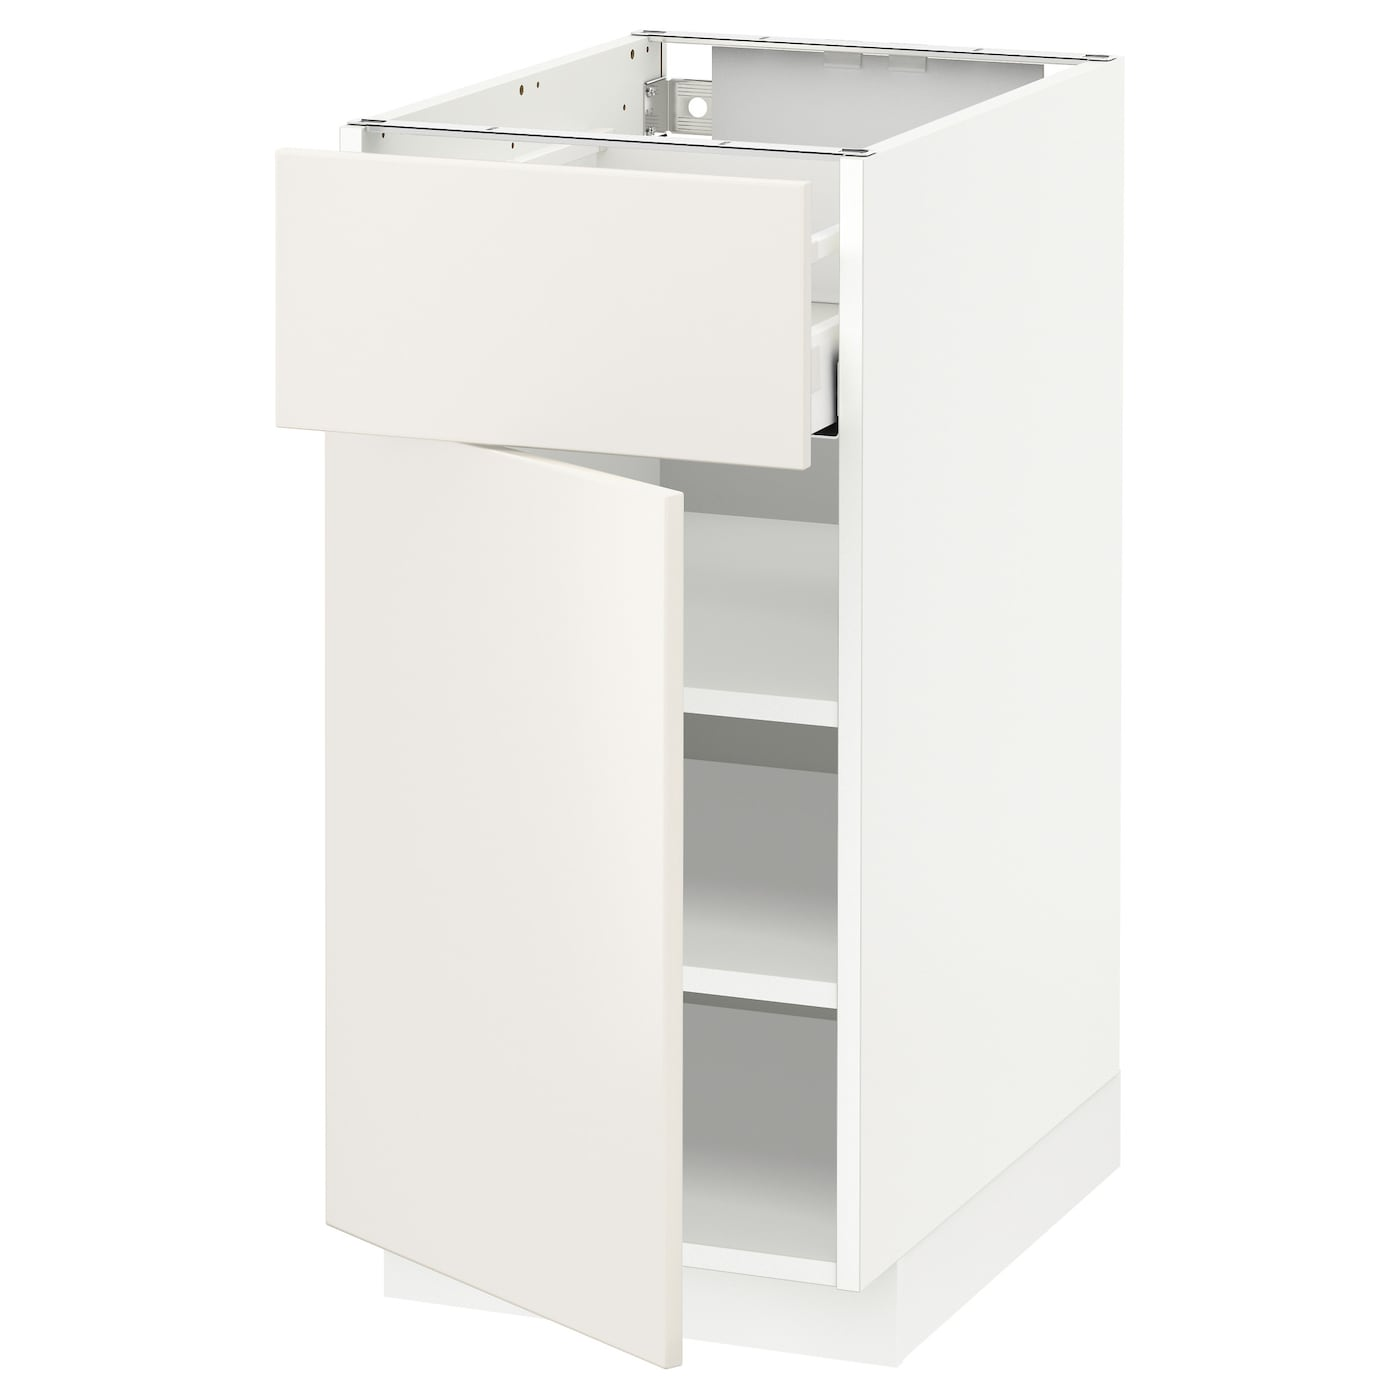 Ringhult Drawer Front High Gloss White 60 X 40 Cm: METOD/MAXIMERA Base Cabinet With Drawer/door White